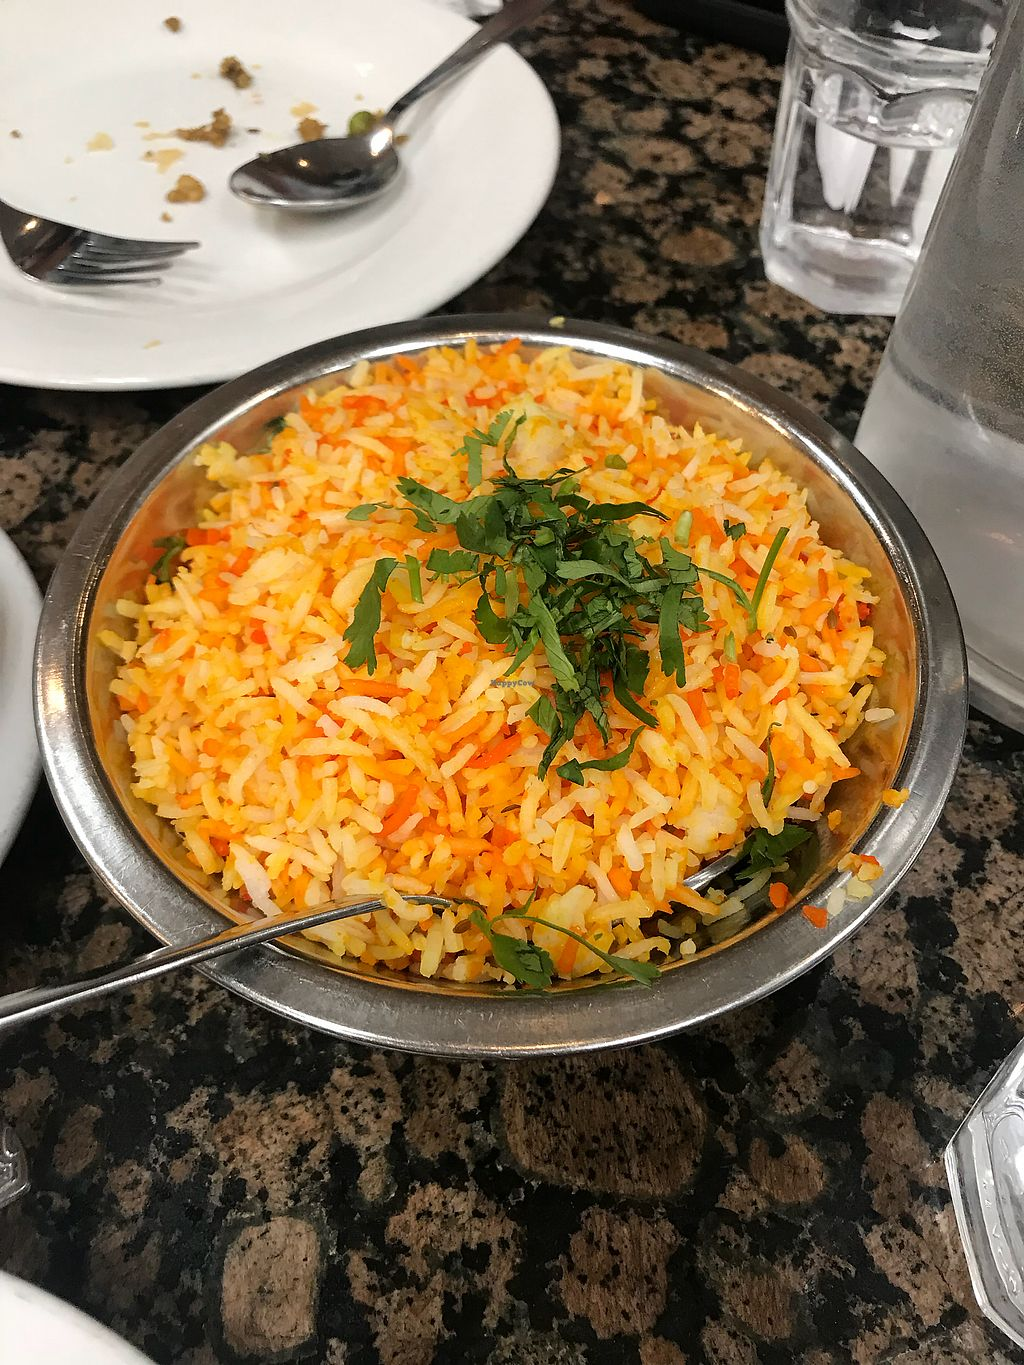 "Photo of Bhanu's Indian Grocery and Cuisine  by <a href=""/members/profile/Vegan_Ness"">Vegan_Ness</a> <br/>Saffron rice <br/> January 2, 2018  - <a href='/contact/abuse/image/39050/342273'>Report</a>"